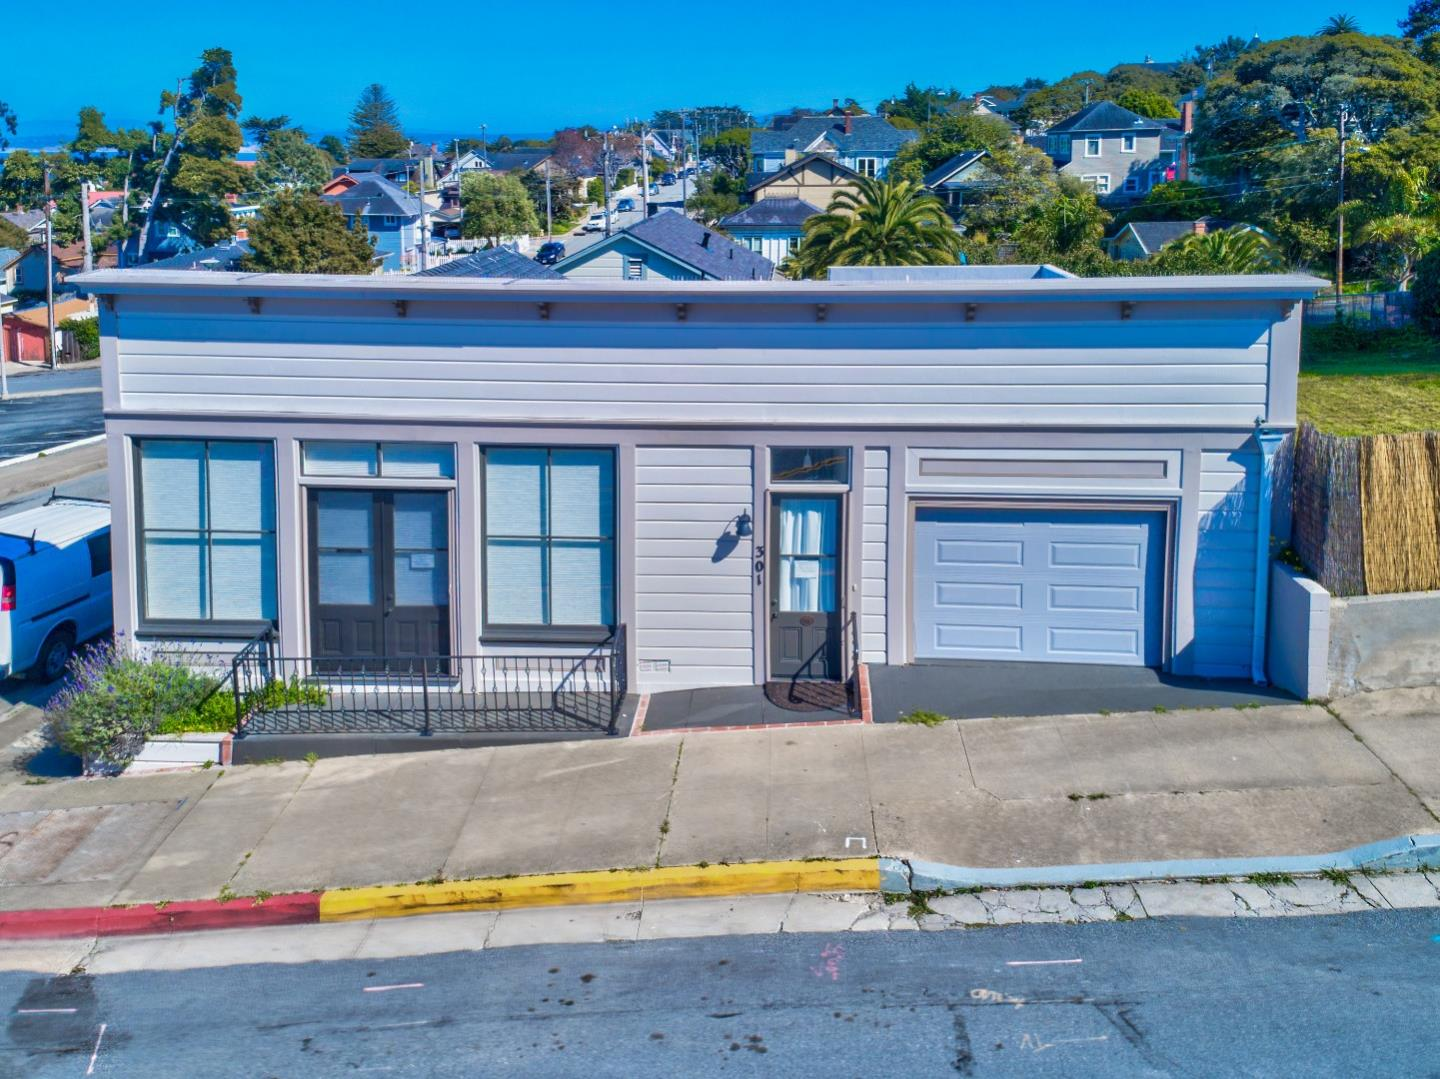 301 Fountain Ave, Pacific Grove, CA 93950 - MLS 81698925 - Coldwell ...